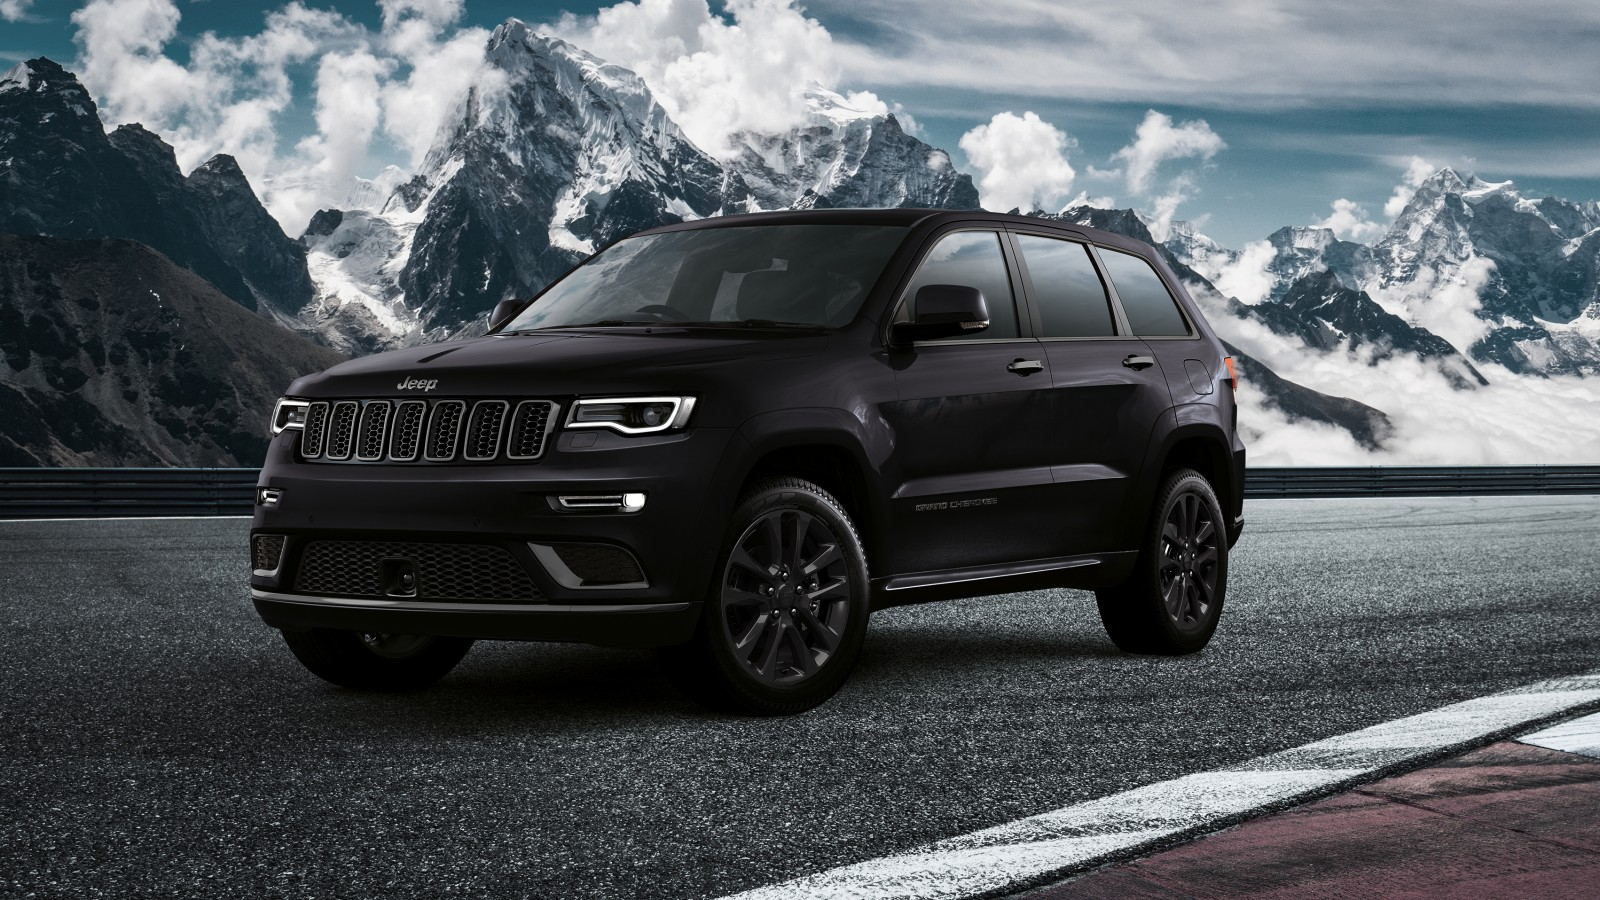 2018 Jeep Grand Cherokee Trailhawk >> 2019 Jeep Grand Cherokee S Wallpaper | HD Car Wallpapers ...